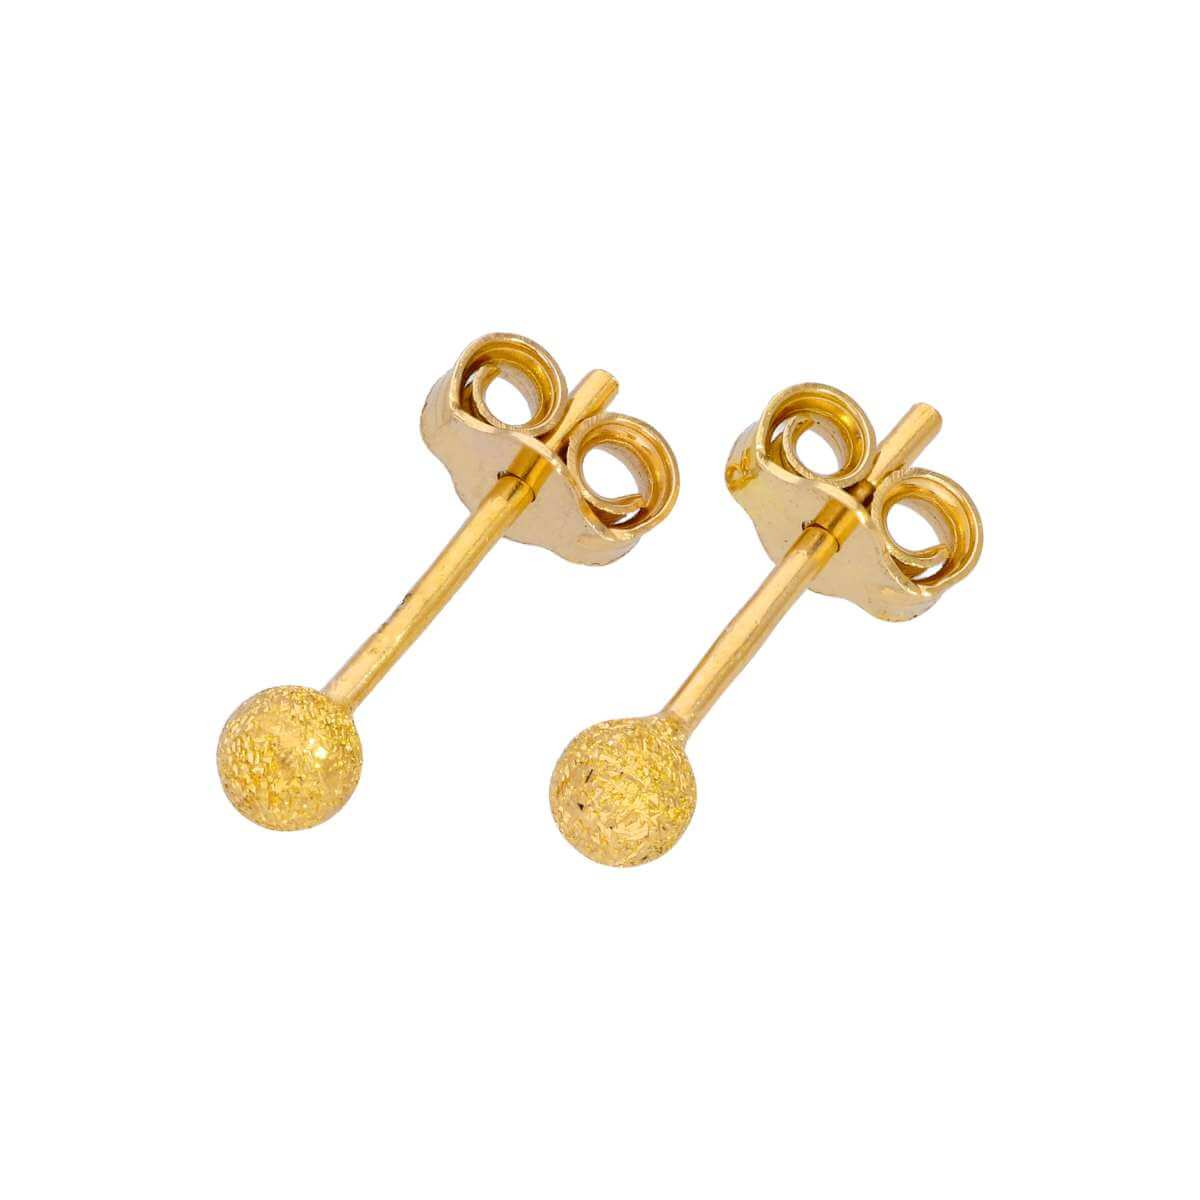 Yellow Gold Plated Frosted Sterling Silver Ball Stud Earrings 3mm